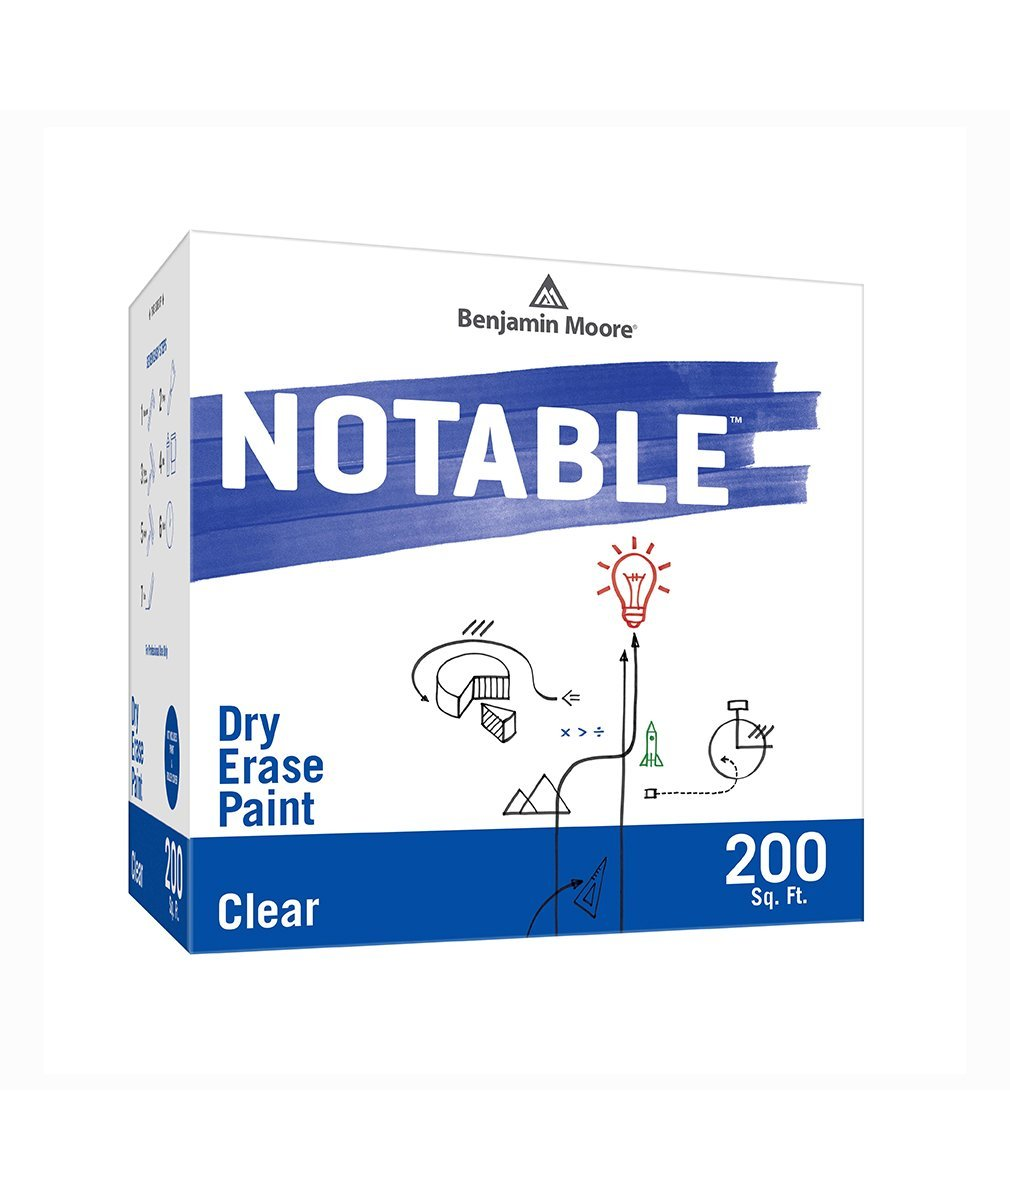 Benjamin Moore Notable Dry Erase Paint in Clear 200 sq. ft, available at Mallory Paint Stores.